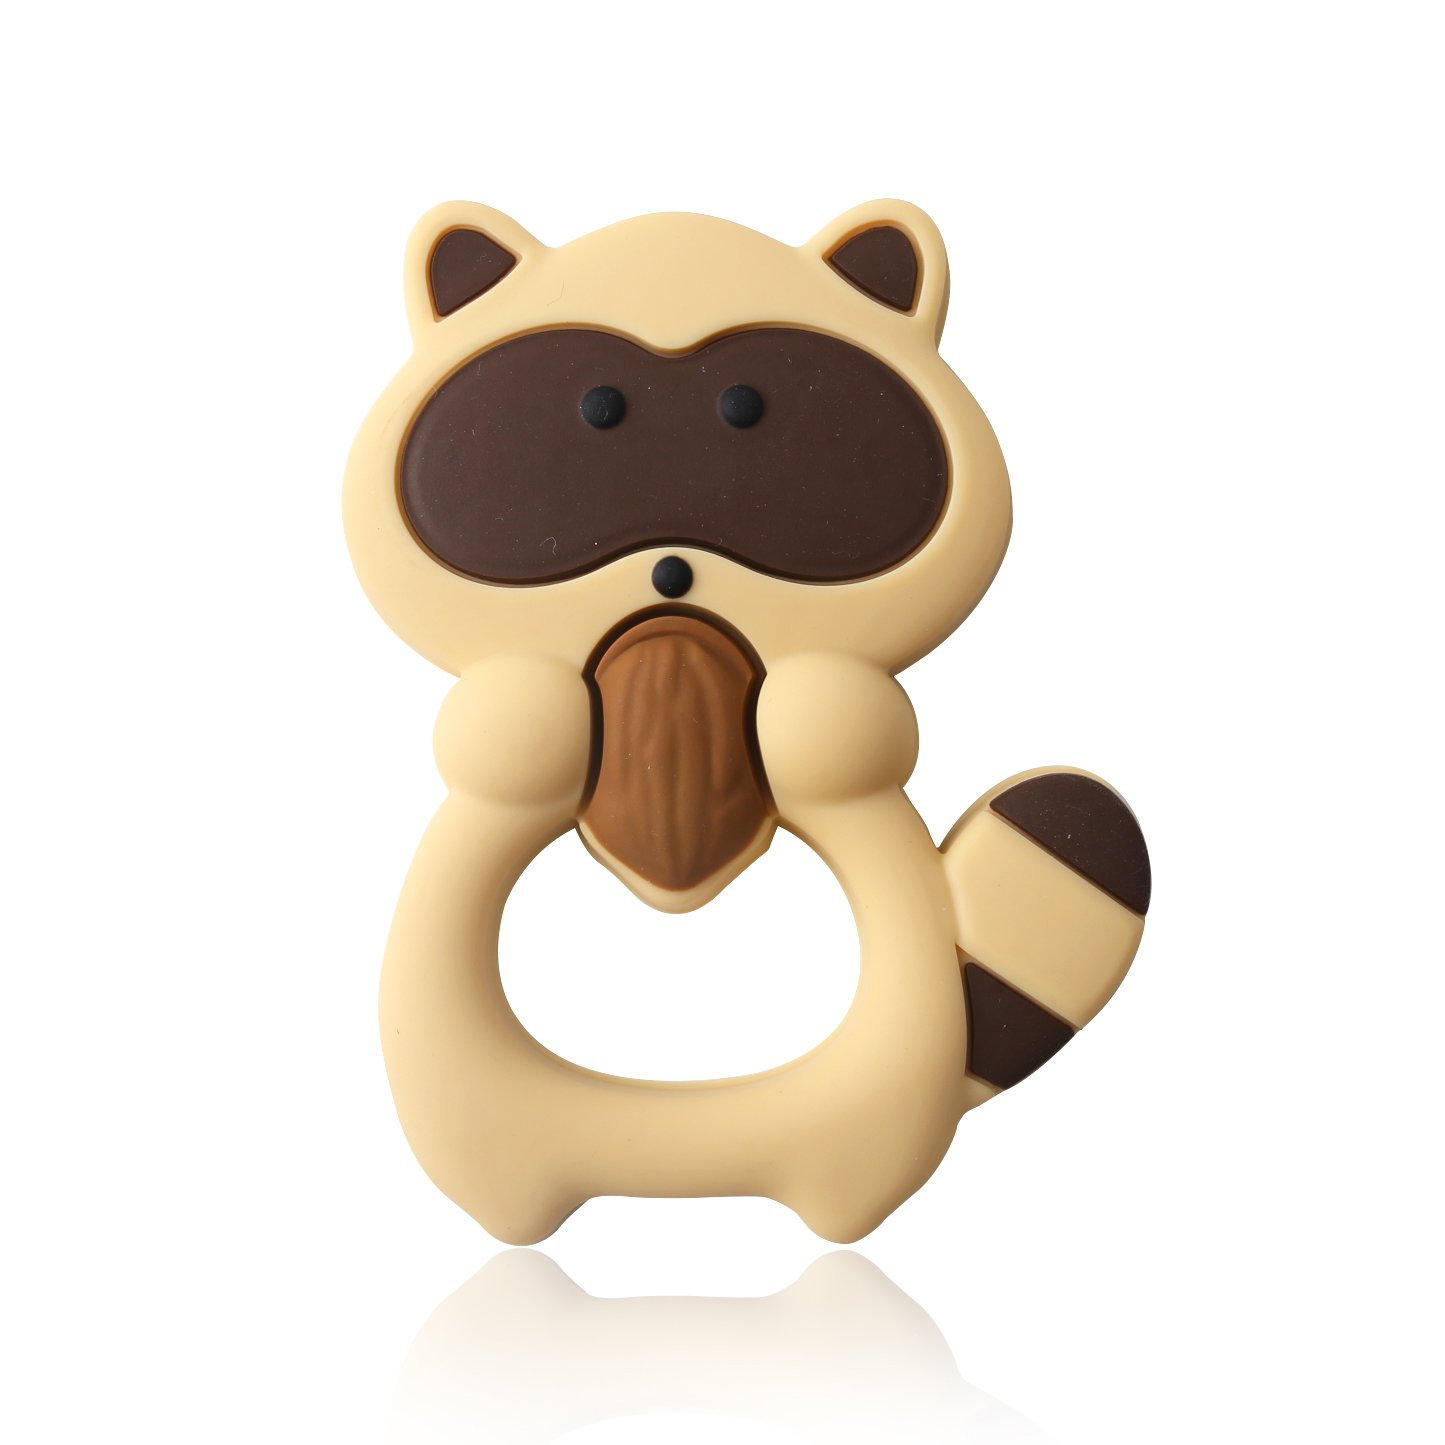 Baby Teether Toys Silicone Teething Infant Teether Pendant BPA Free Baby Shower Gift Raccoon - Brown HAO JIE XC-SSP004